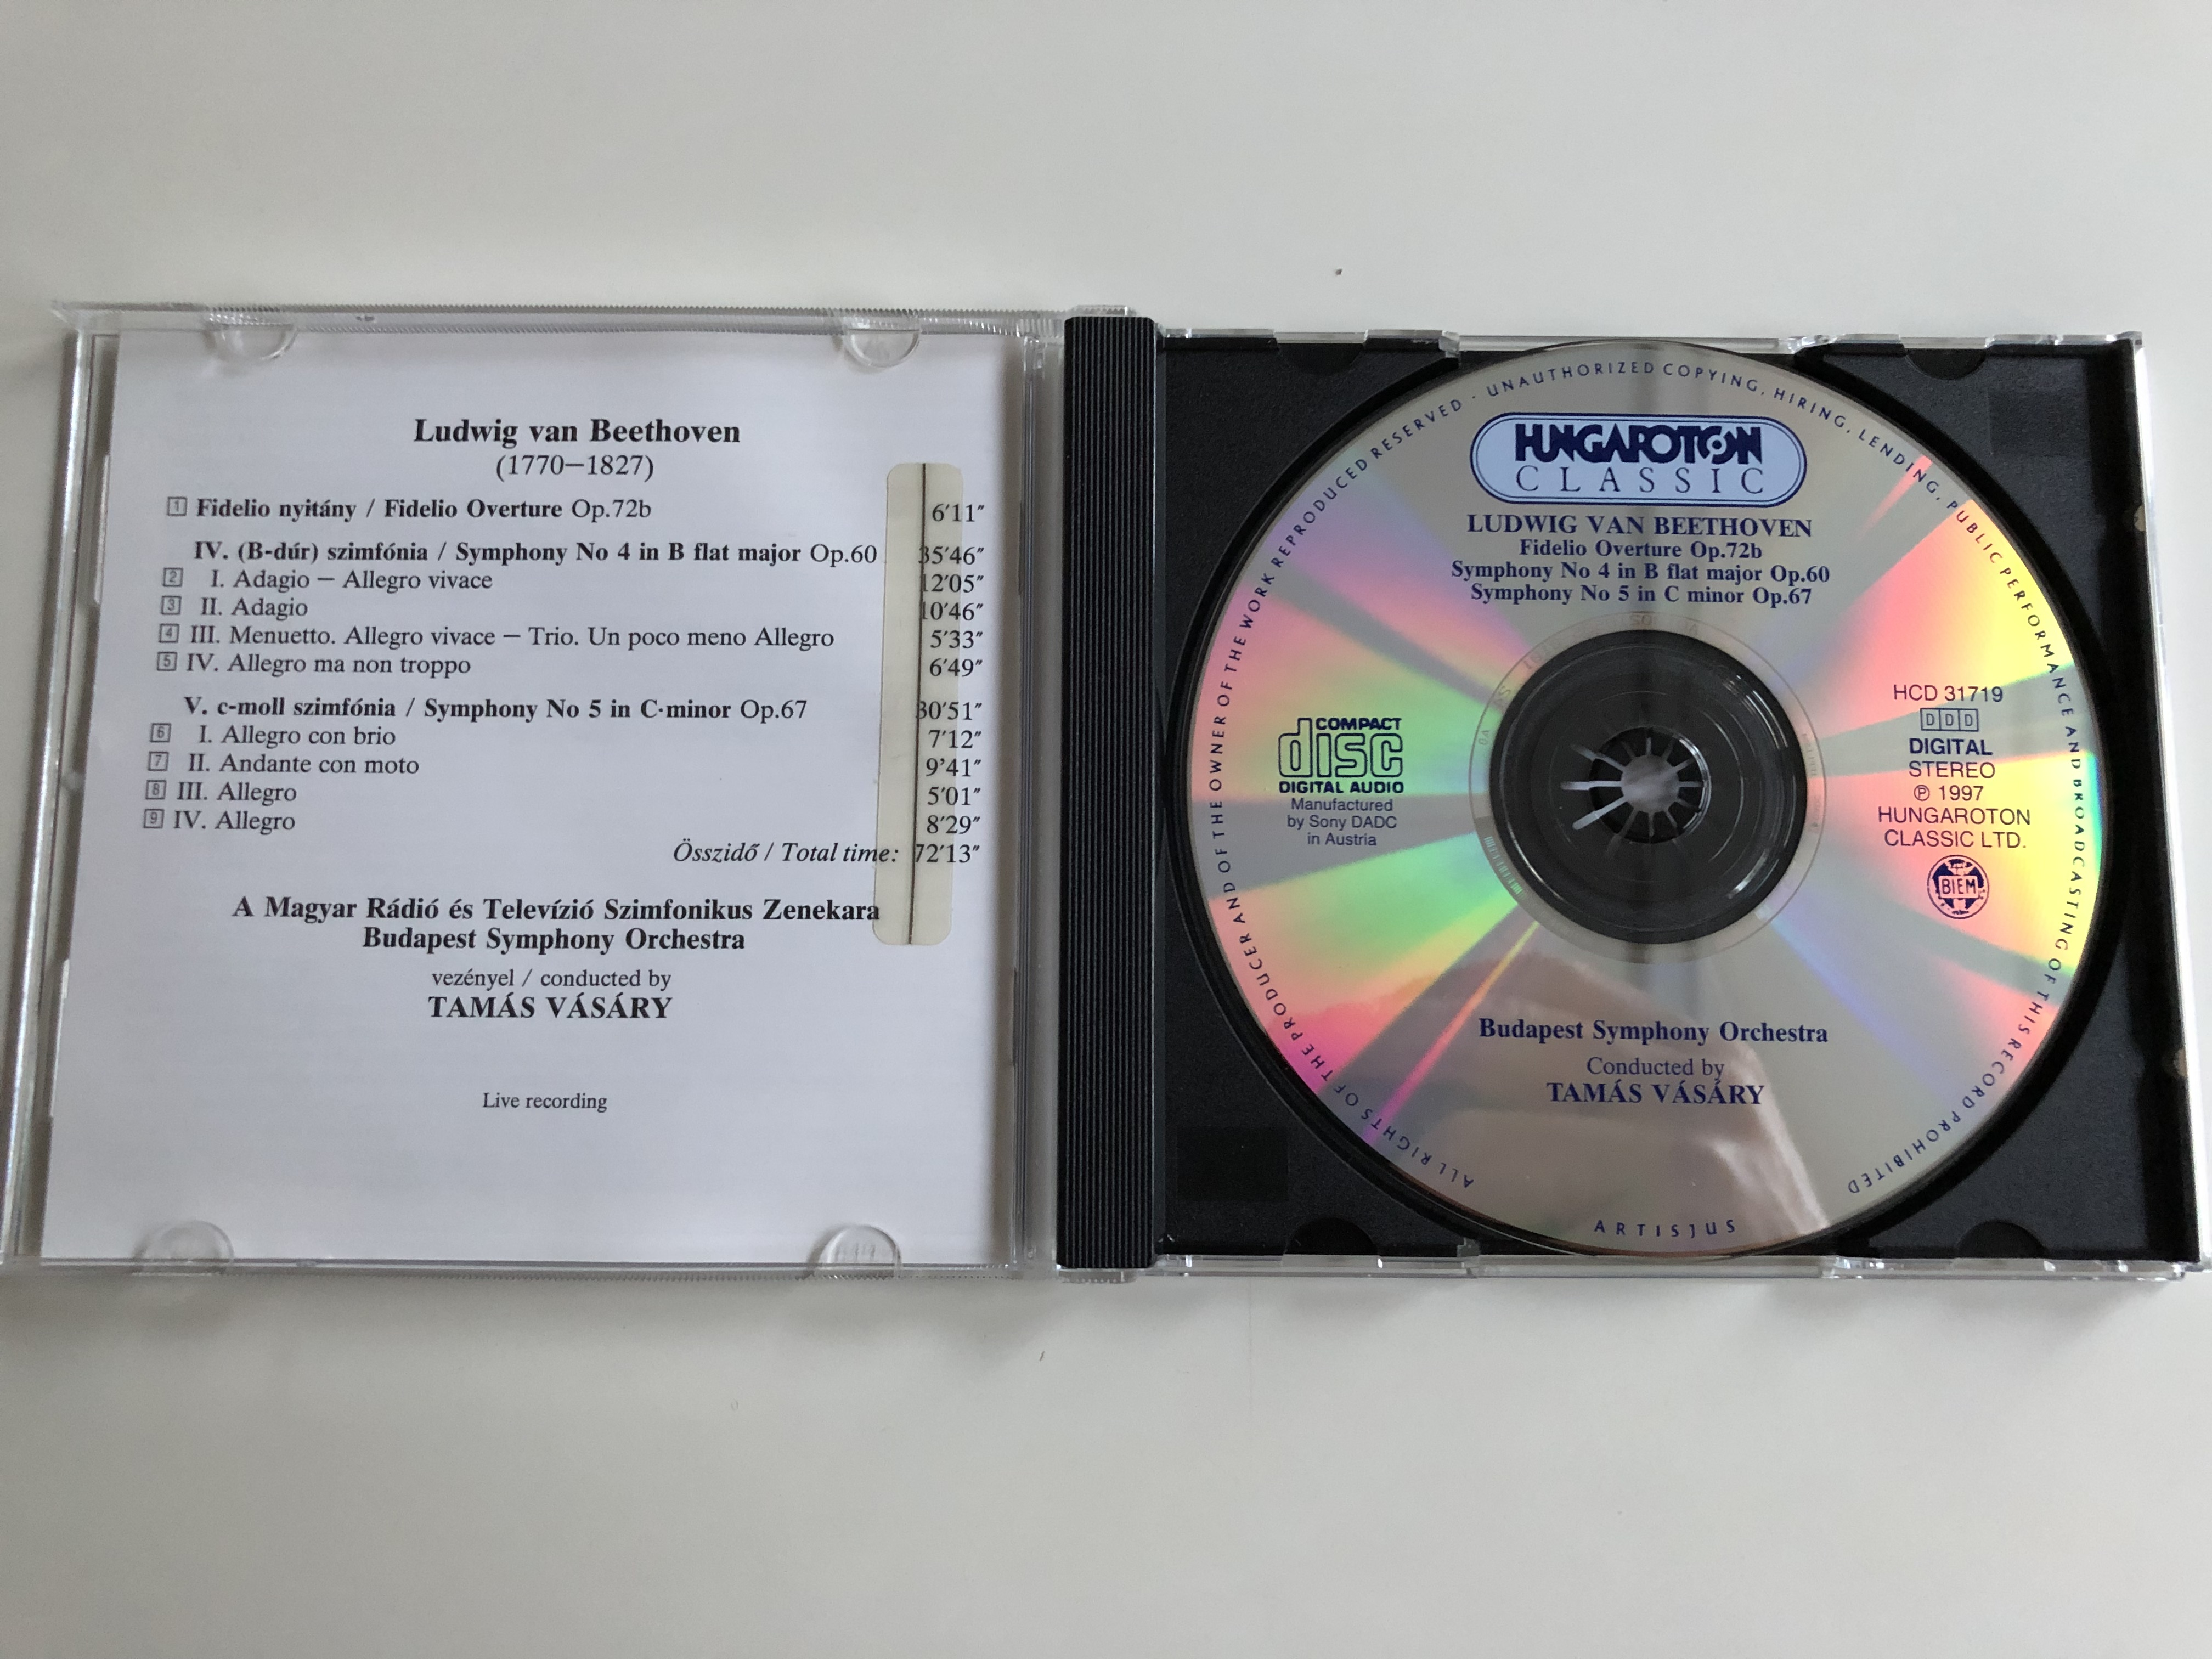 beethoven-symphony-no.-4-no.-5-fidelio-overture-budapest-symphony-orchestra-conducted-by-tam-s-v-s-ry-live-recording-hungaroton-classic-audio-cd-1997-hcd-31719-5-.jpg